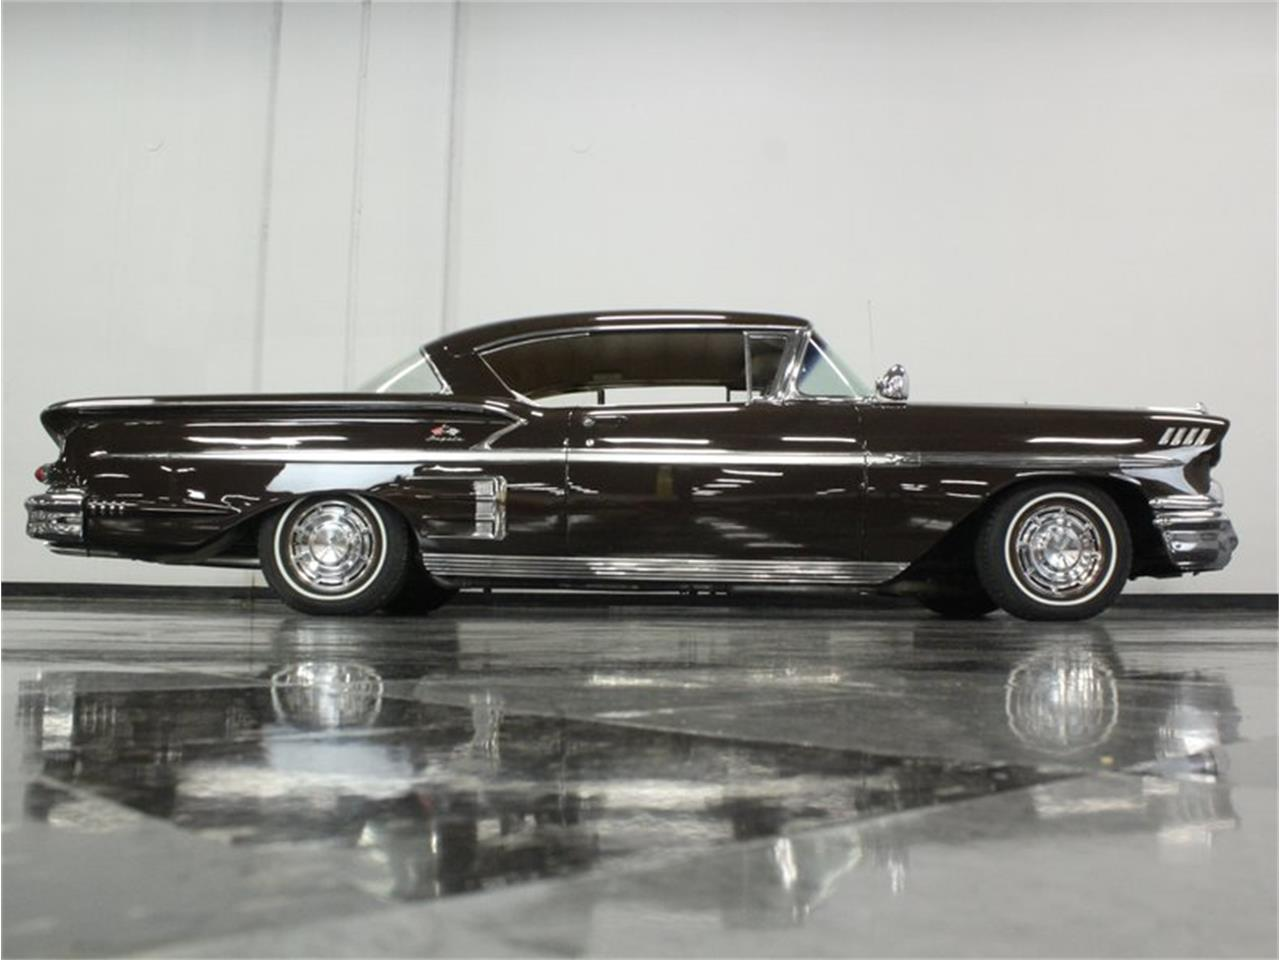 Large Picture of Classic '58 Impala - $44,995.00 Offered by Streetside Classics - Dallas / Fort Worth - HX8B